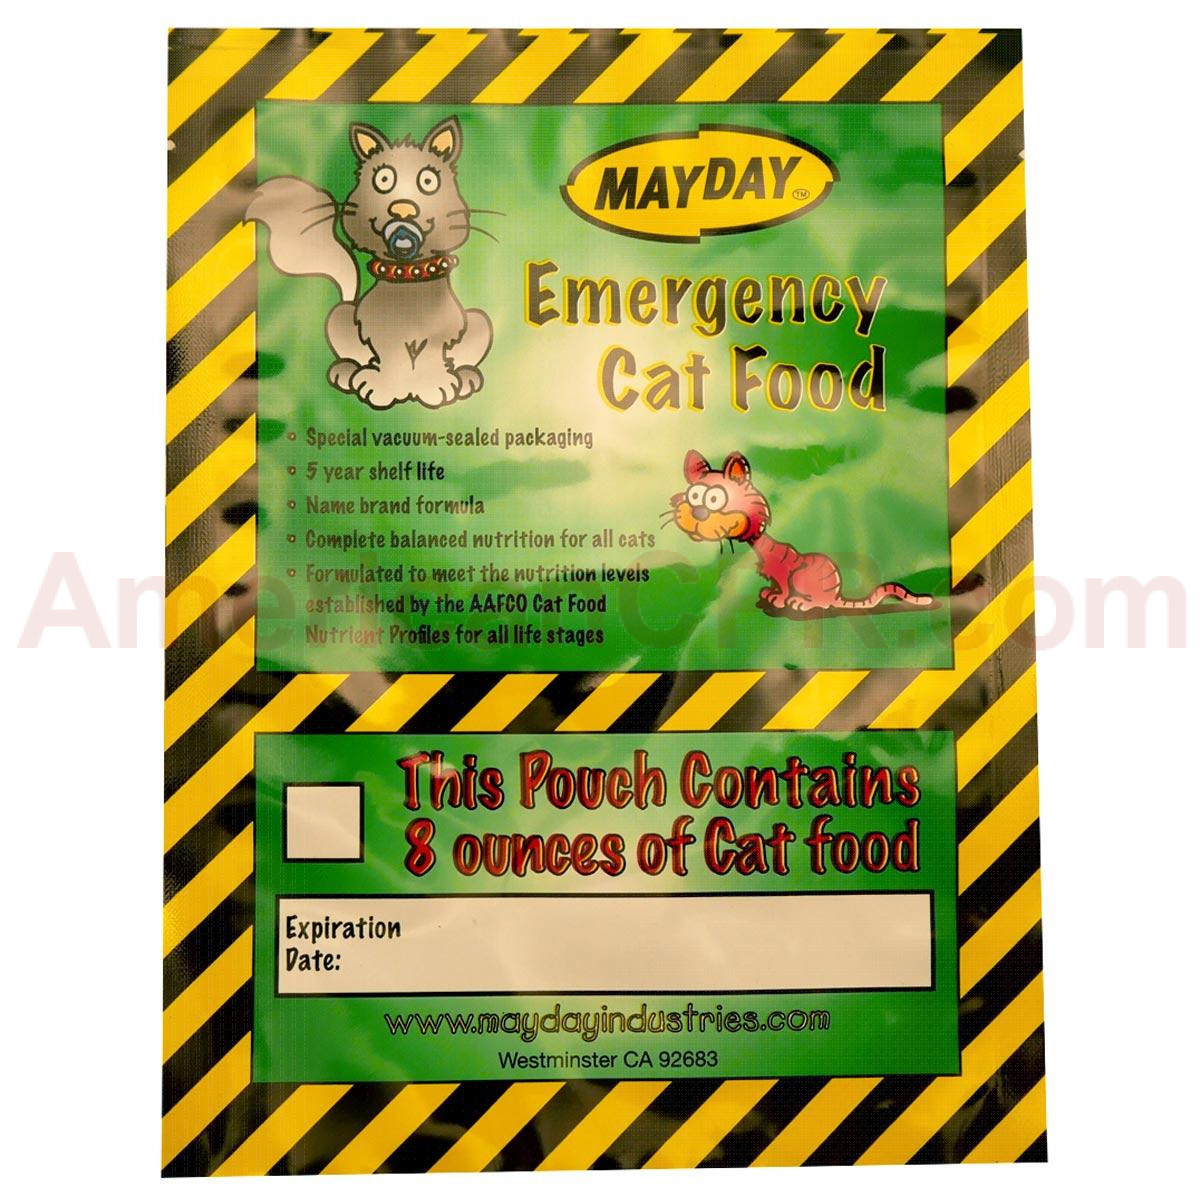 Emergency Cat Food - Mayday